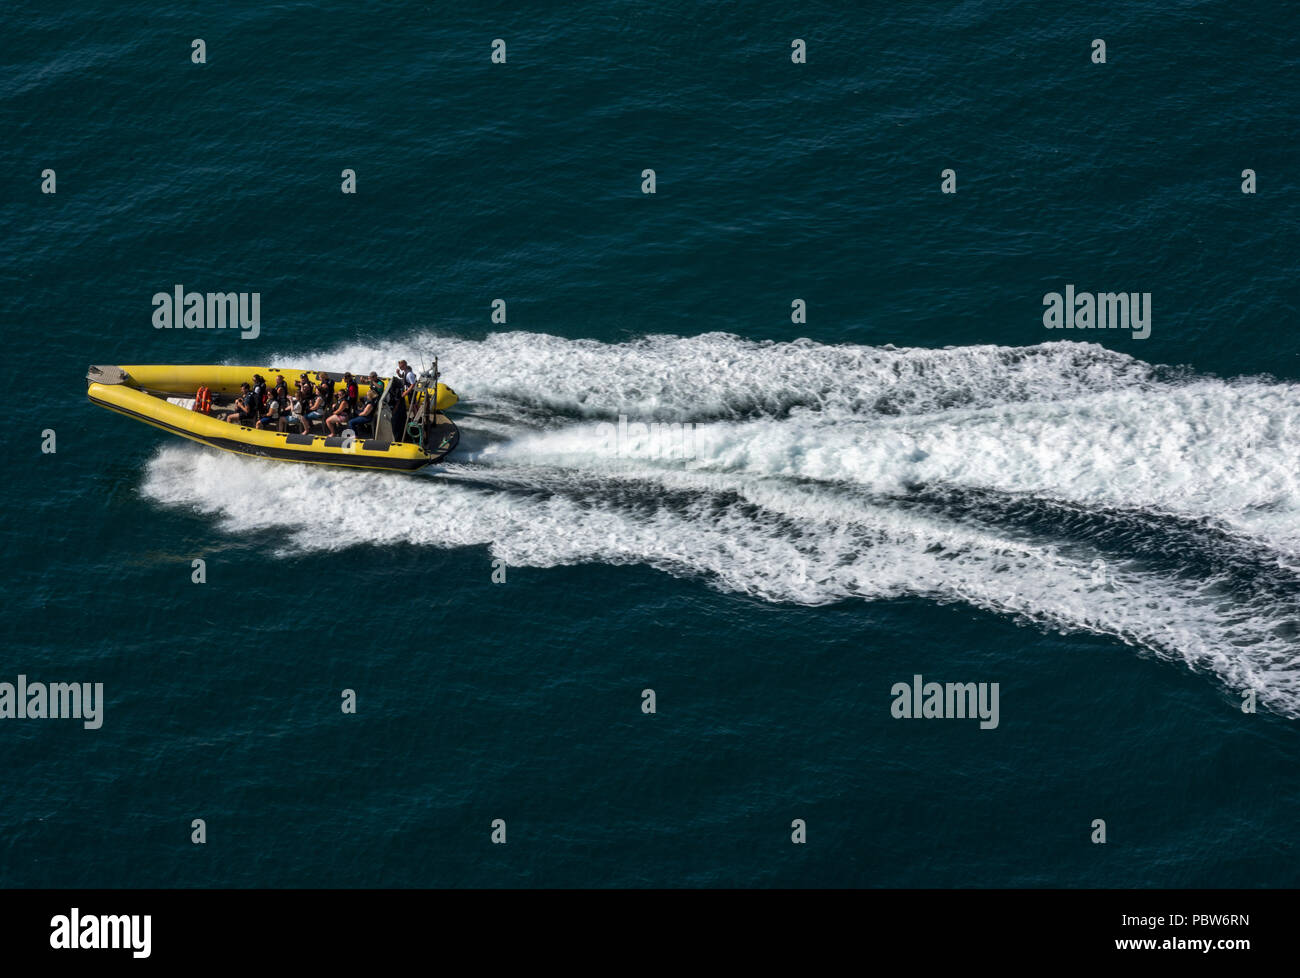 a high speed fast rib boat racing across the water full of passengers causing waves and wake. - Stock Image